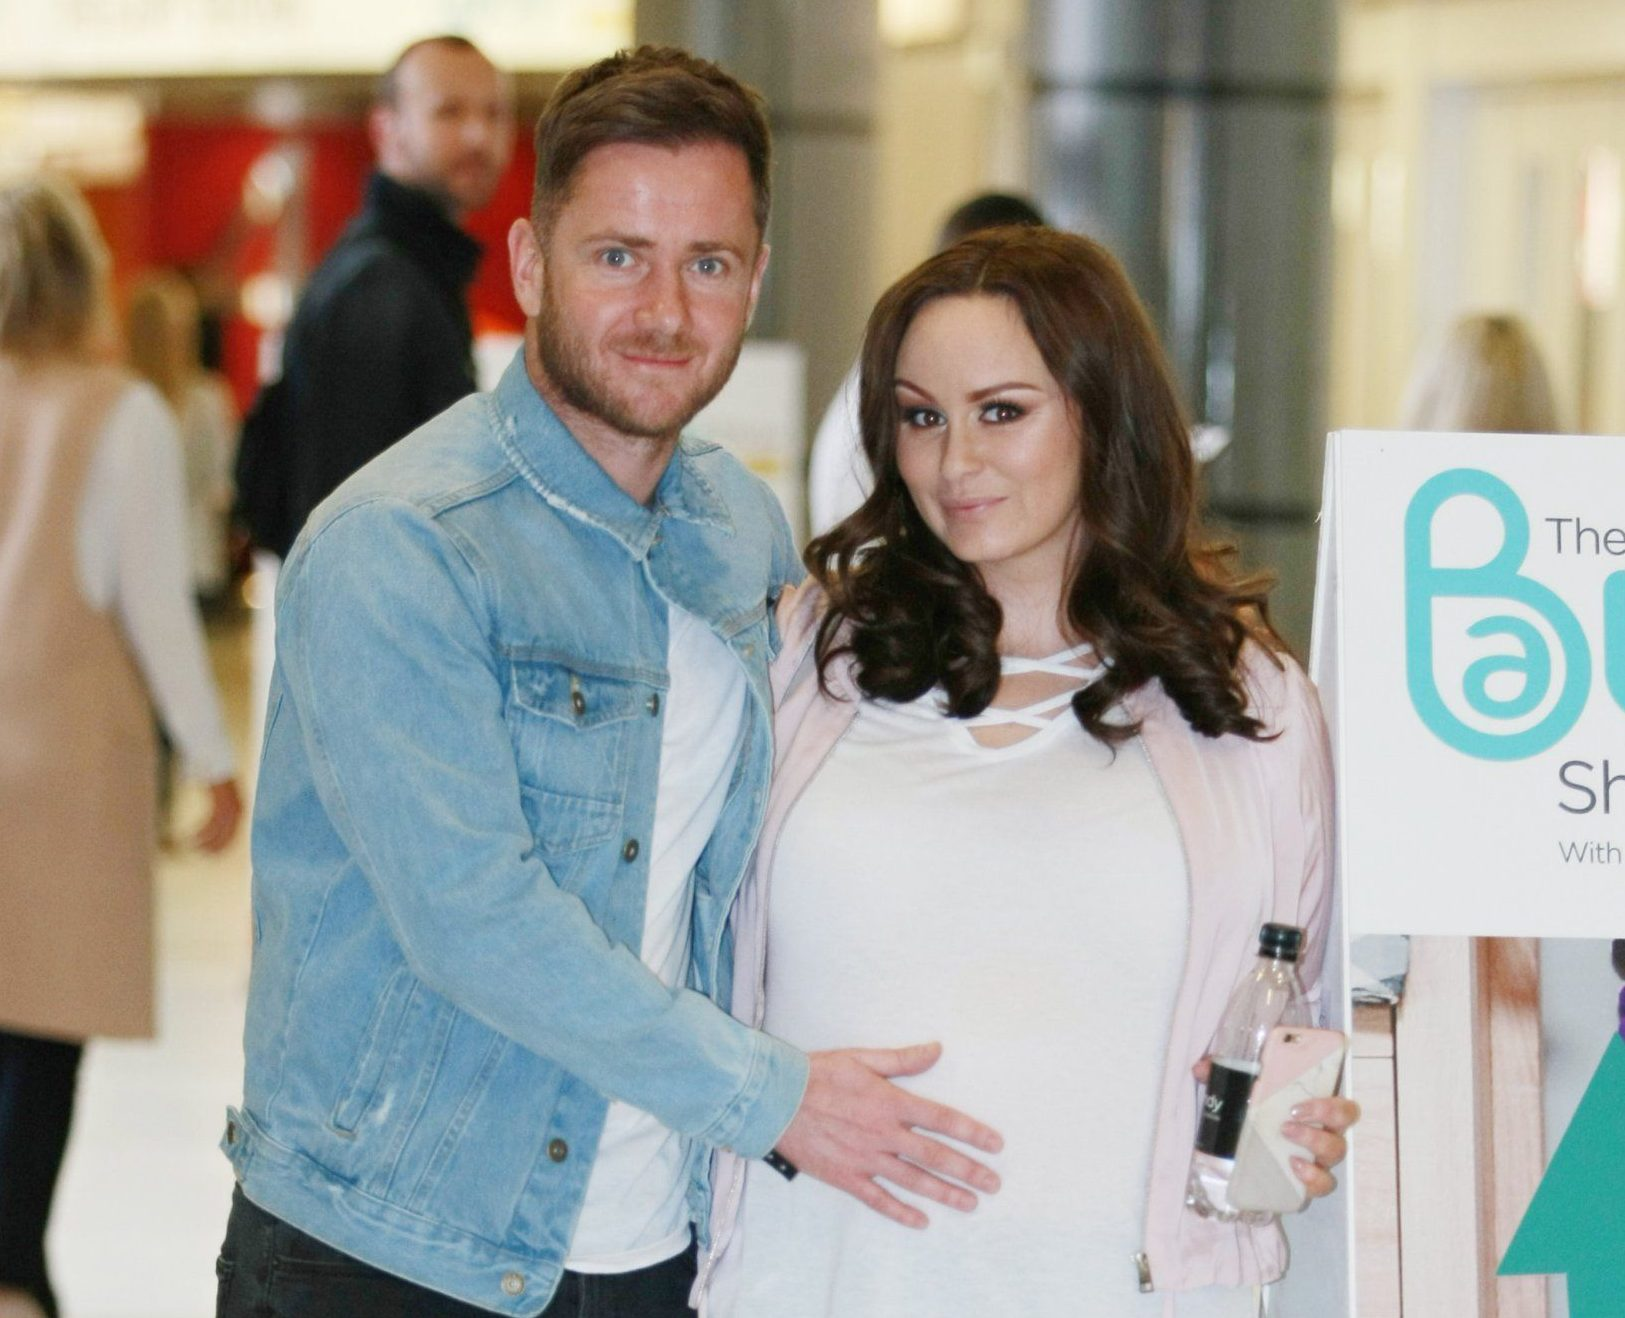 Chanelle Hayes shares heartbreaking post in wake of relationship split just months after giving birth: 'I'm dying inside'